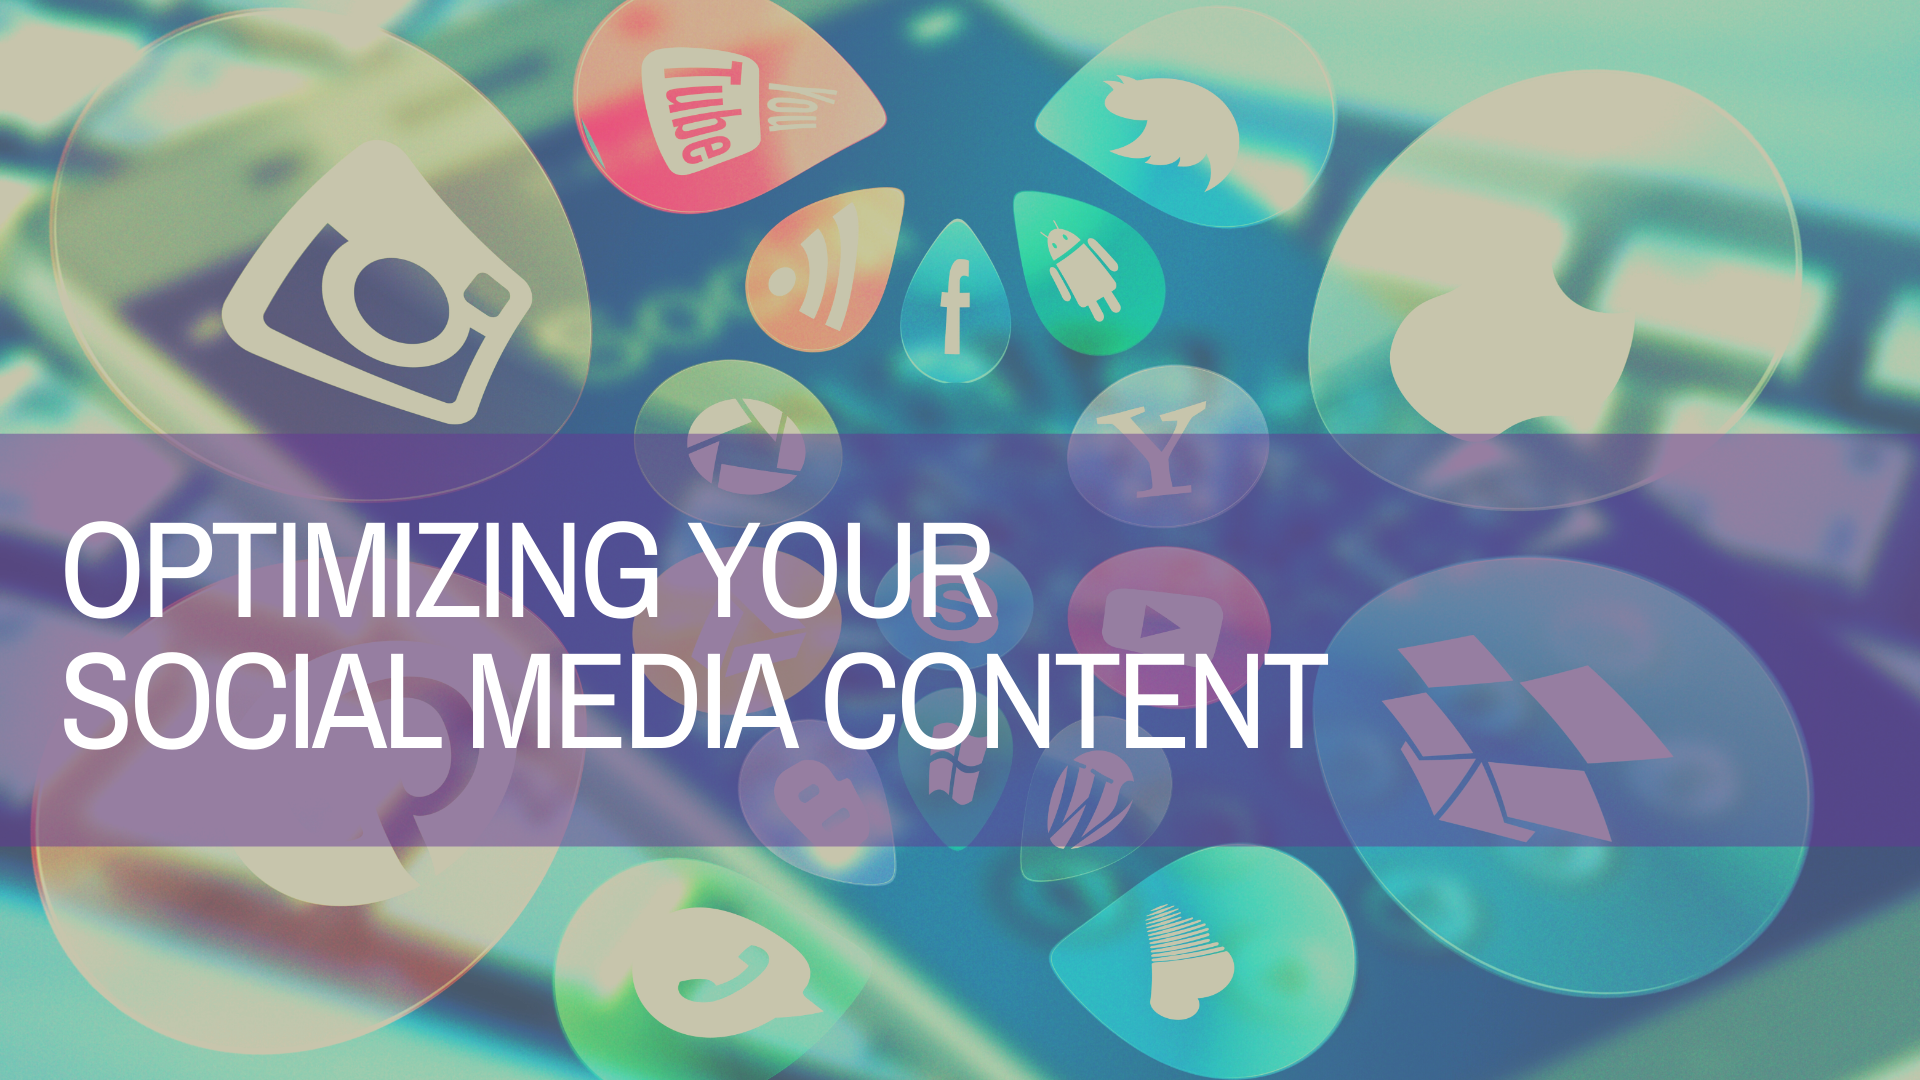 Is Your Social Media Content Optimized for Search?